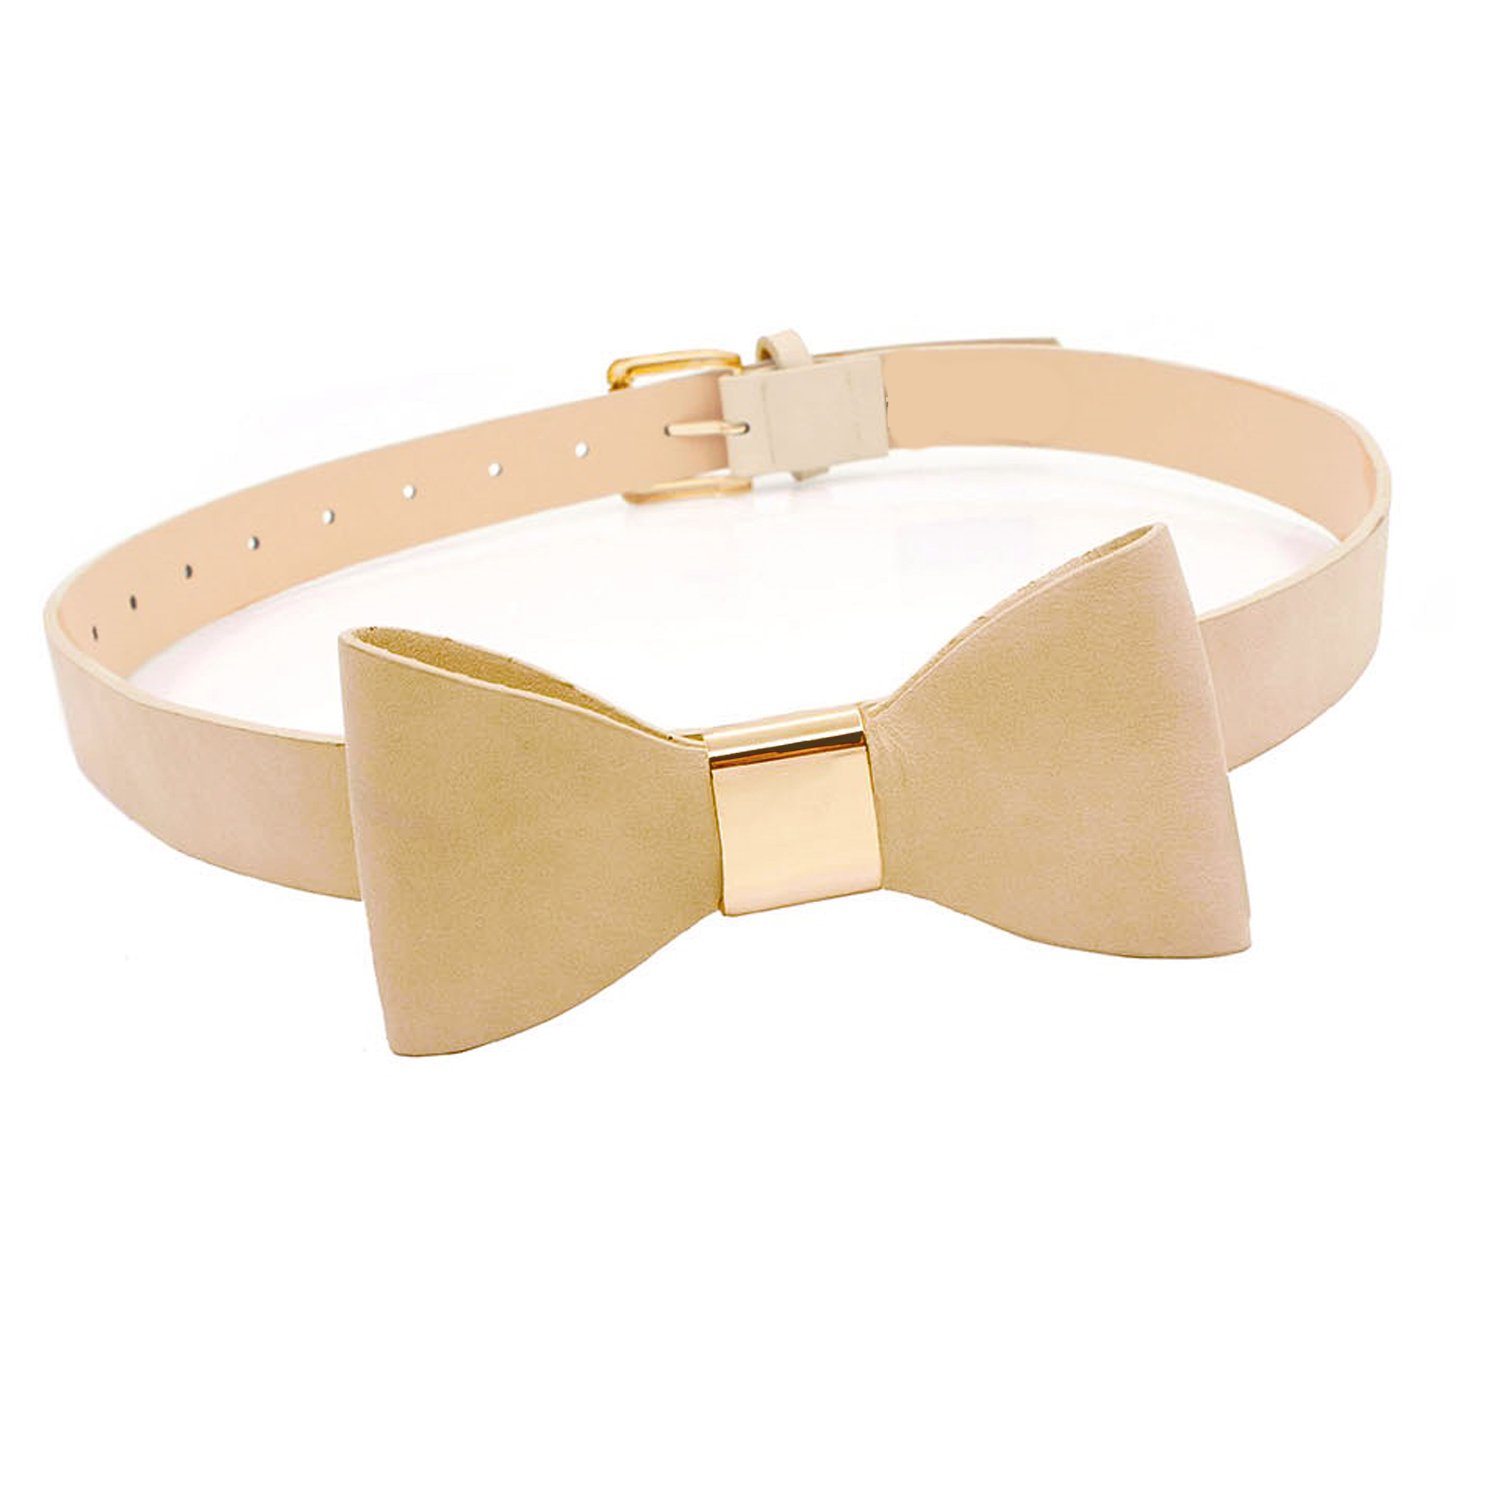 "Adorable Women's Belt with Big Bow ""Buckle"" - 1"" wide"